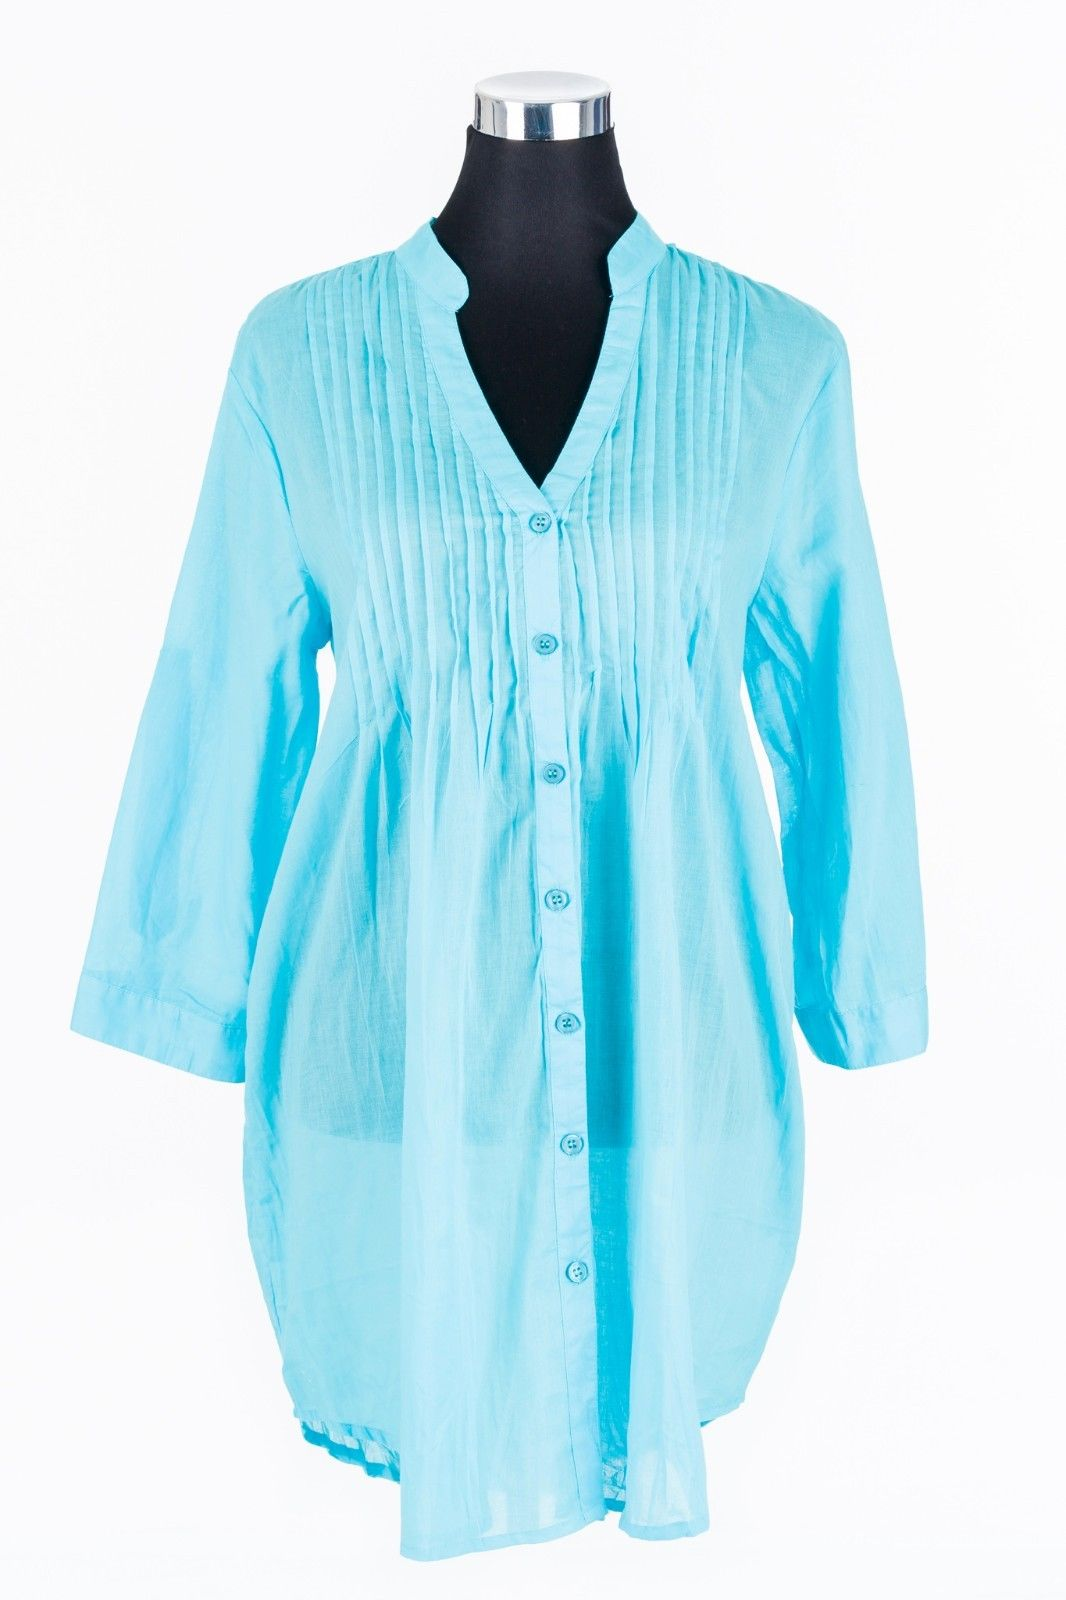 LADIES-WOMENS-BEACH-SHIRT-AQUA-100-COTTON-SIZES-10-TO-20-PLUS-SIZE-382139668516